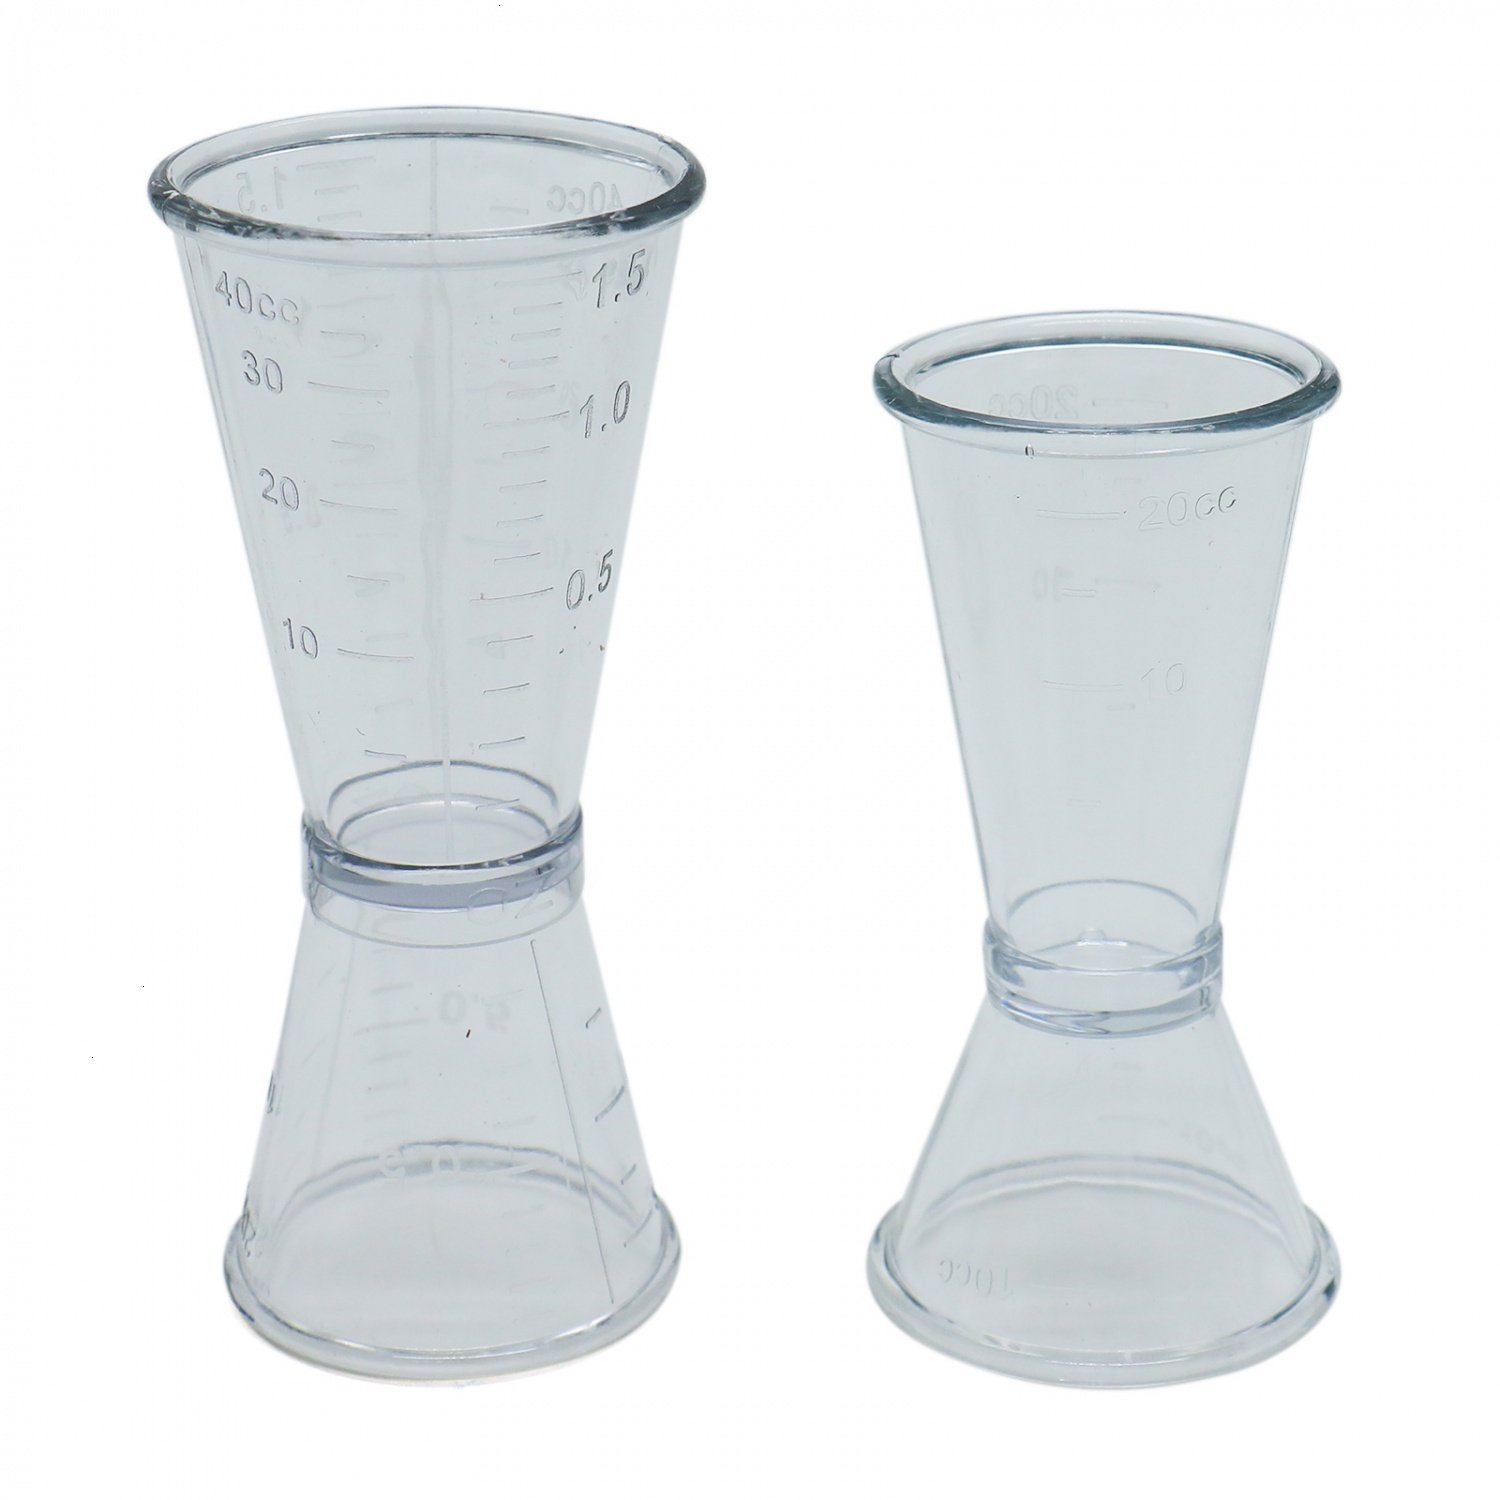 Buorsa 2 Pack Cocktail Wine Jigger Double Clear Plastic Shot Glasses Drink Spirit Measure Cup Bar Tool Ounce Cup, 2 size